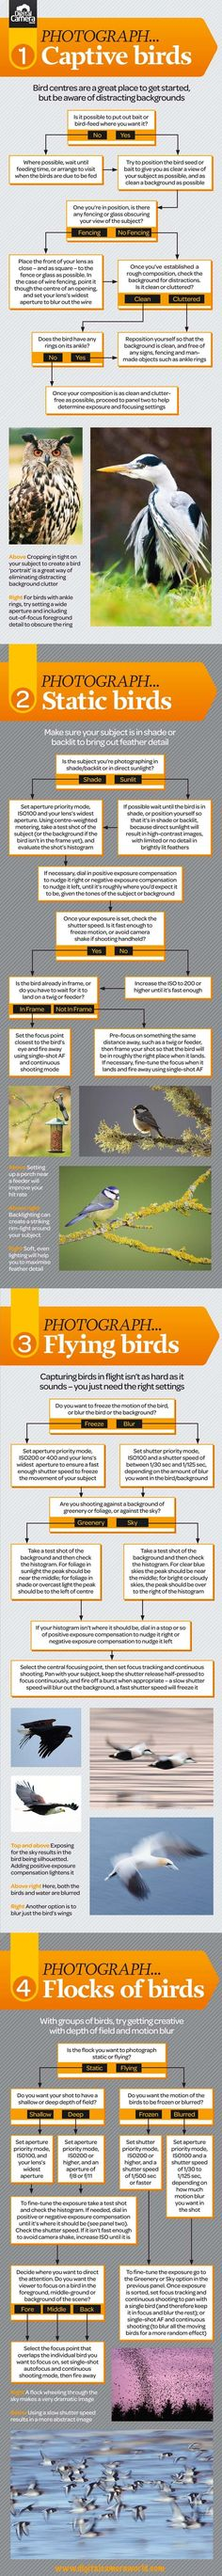 Free bird photography cheat sheet: drag and drop to download